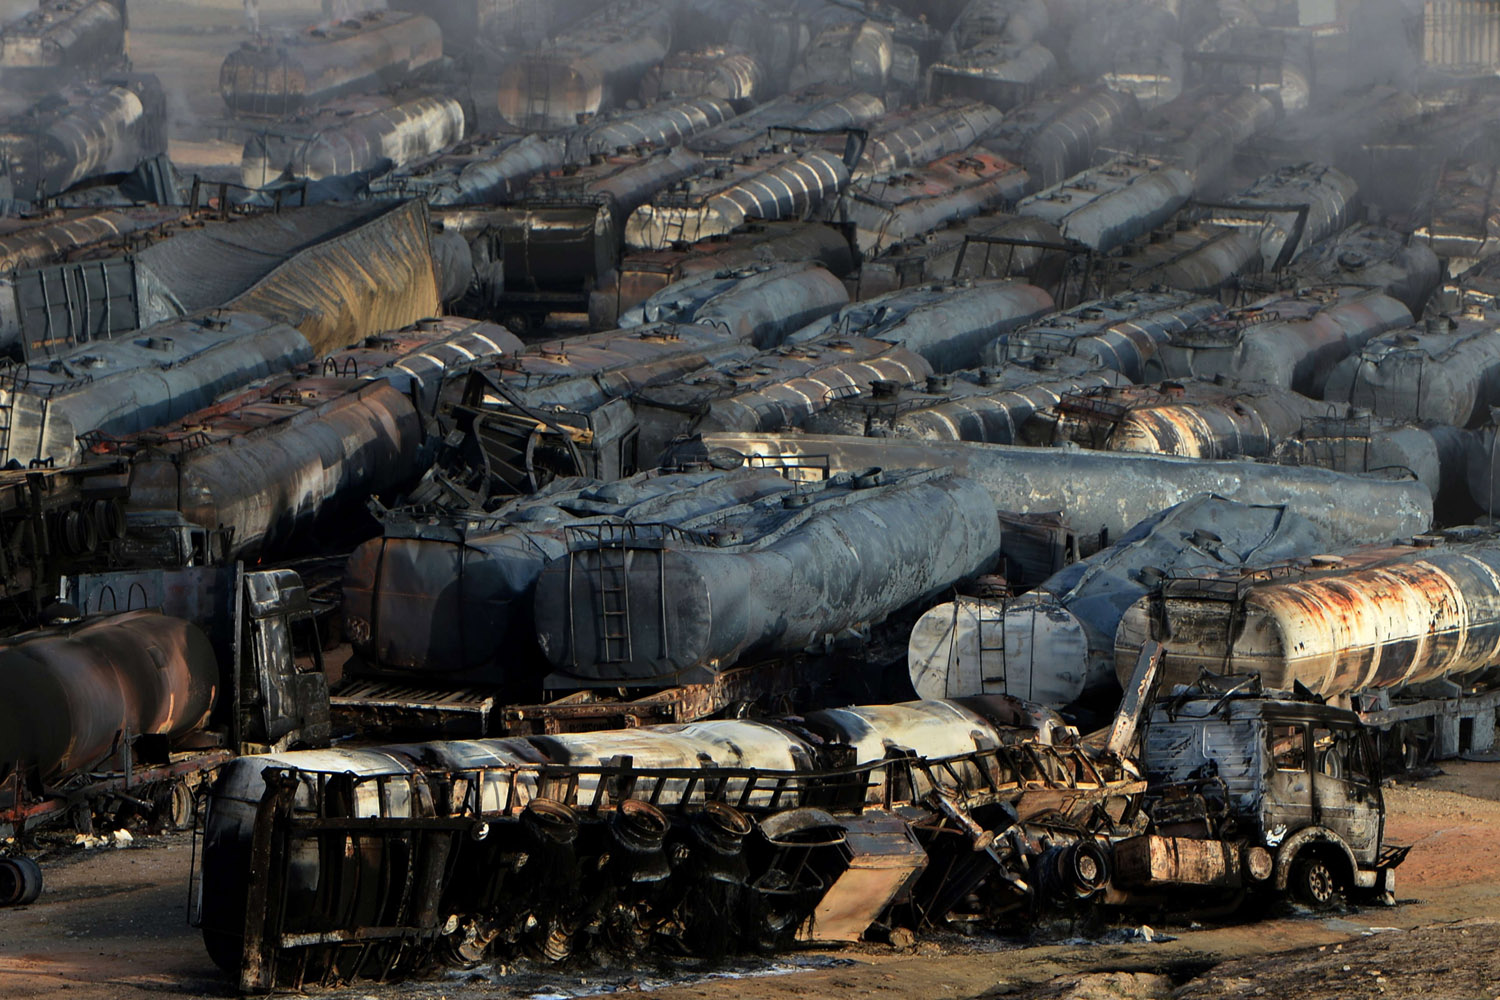 Jul. 5, 2014. Burned-out fuel trucks are seen following an overnight attack by Taliban militants in Chawk-e-Arghandi on outskirts of the Afghan capital Kabul.